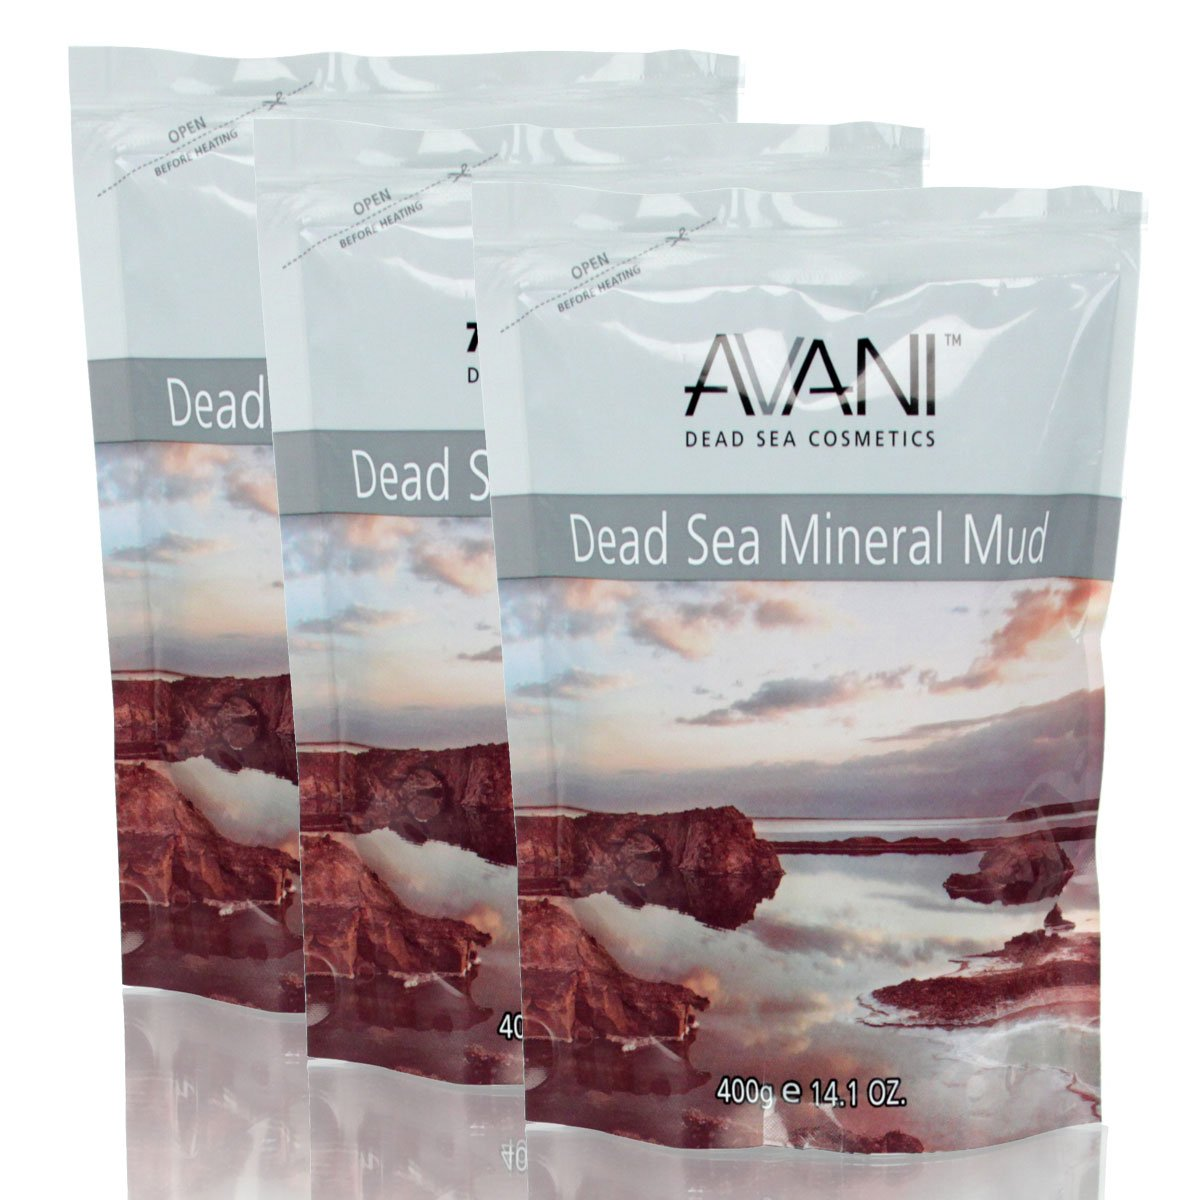 AVANI Classics Dead Sea Mineral Mud | Rich in Magnesium, Potassium, Calcium & Bromide | Actively Cleanses & Purifies Skin Allowing it to Better Absorb Moisture - 14.1 oz (3-pack) by AVANI Dead Sea Cosmetics